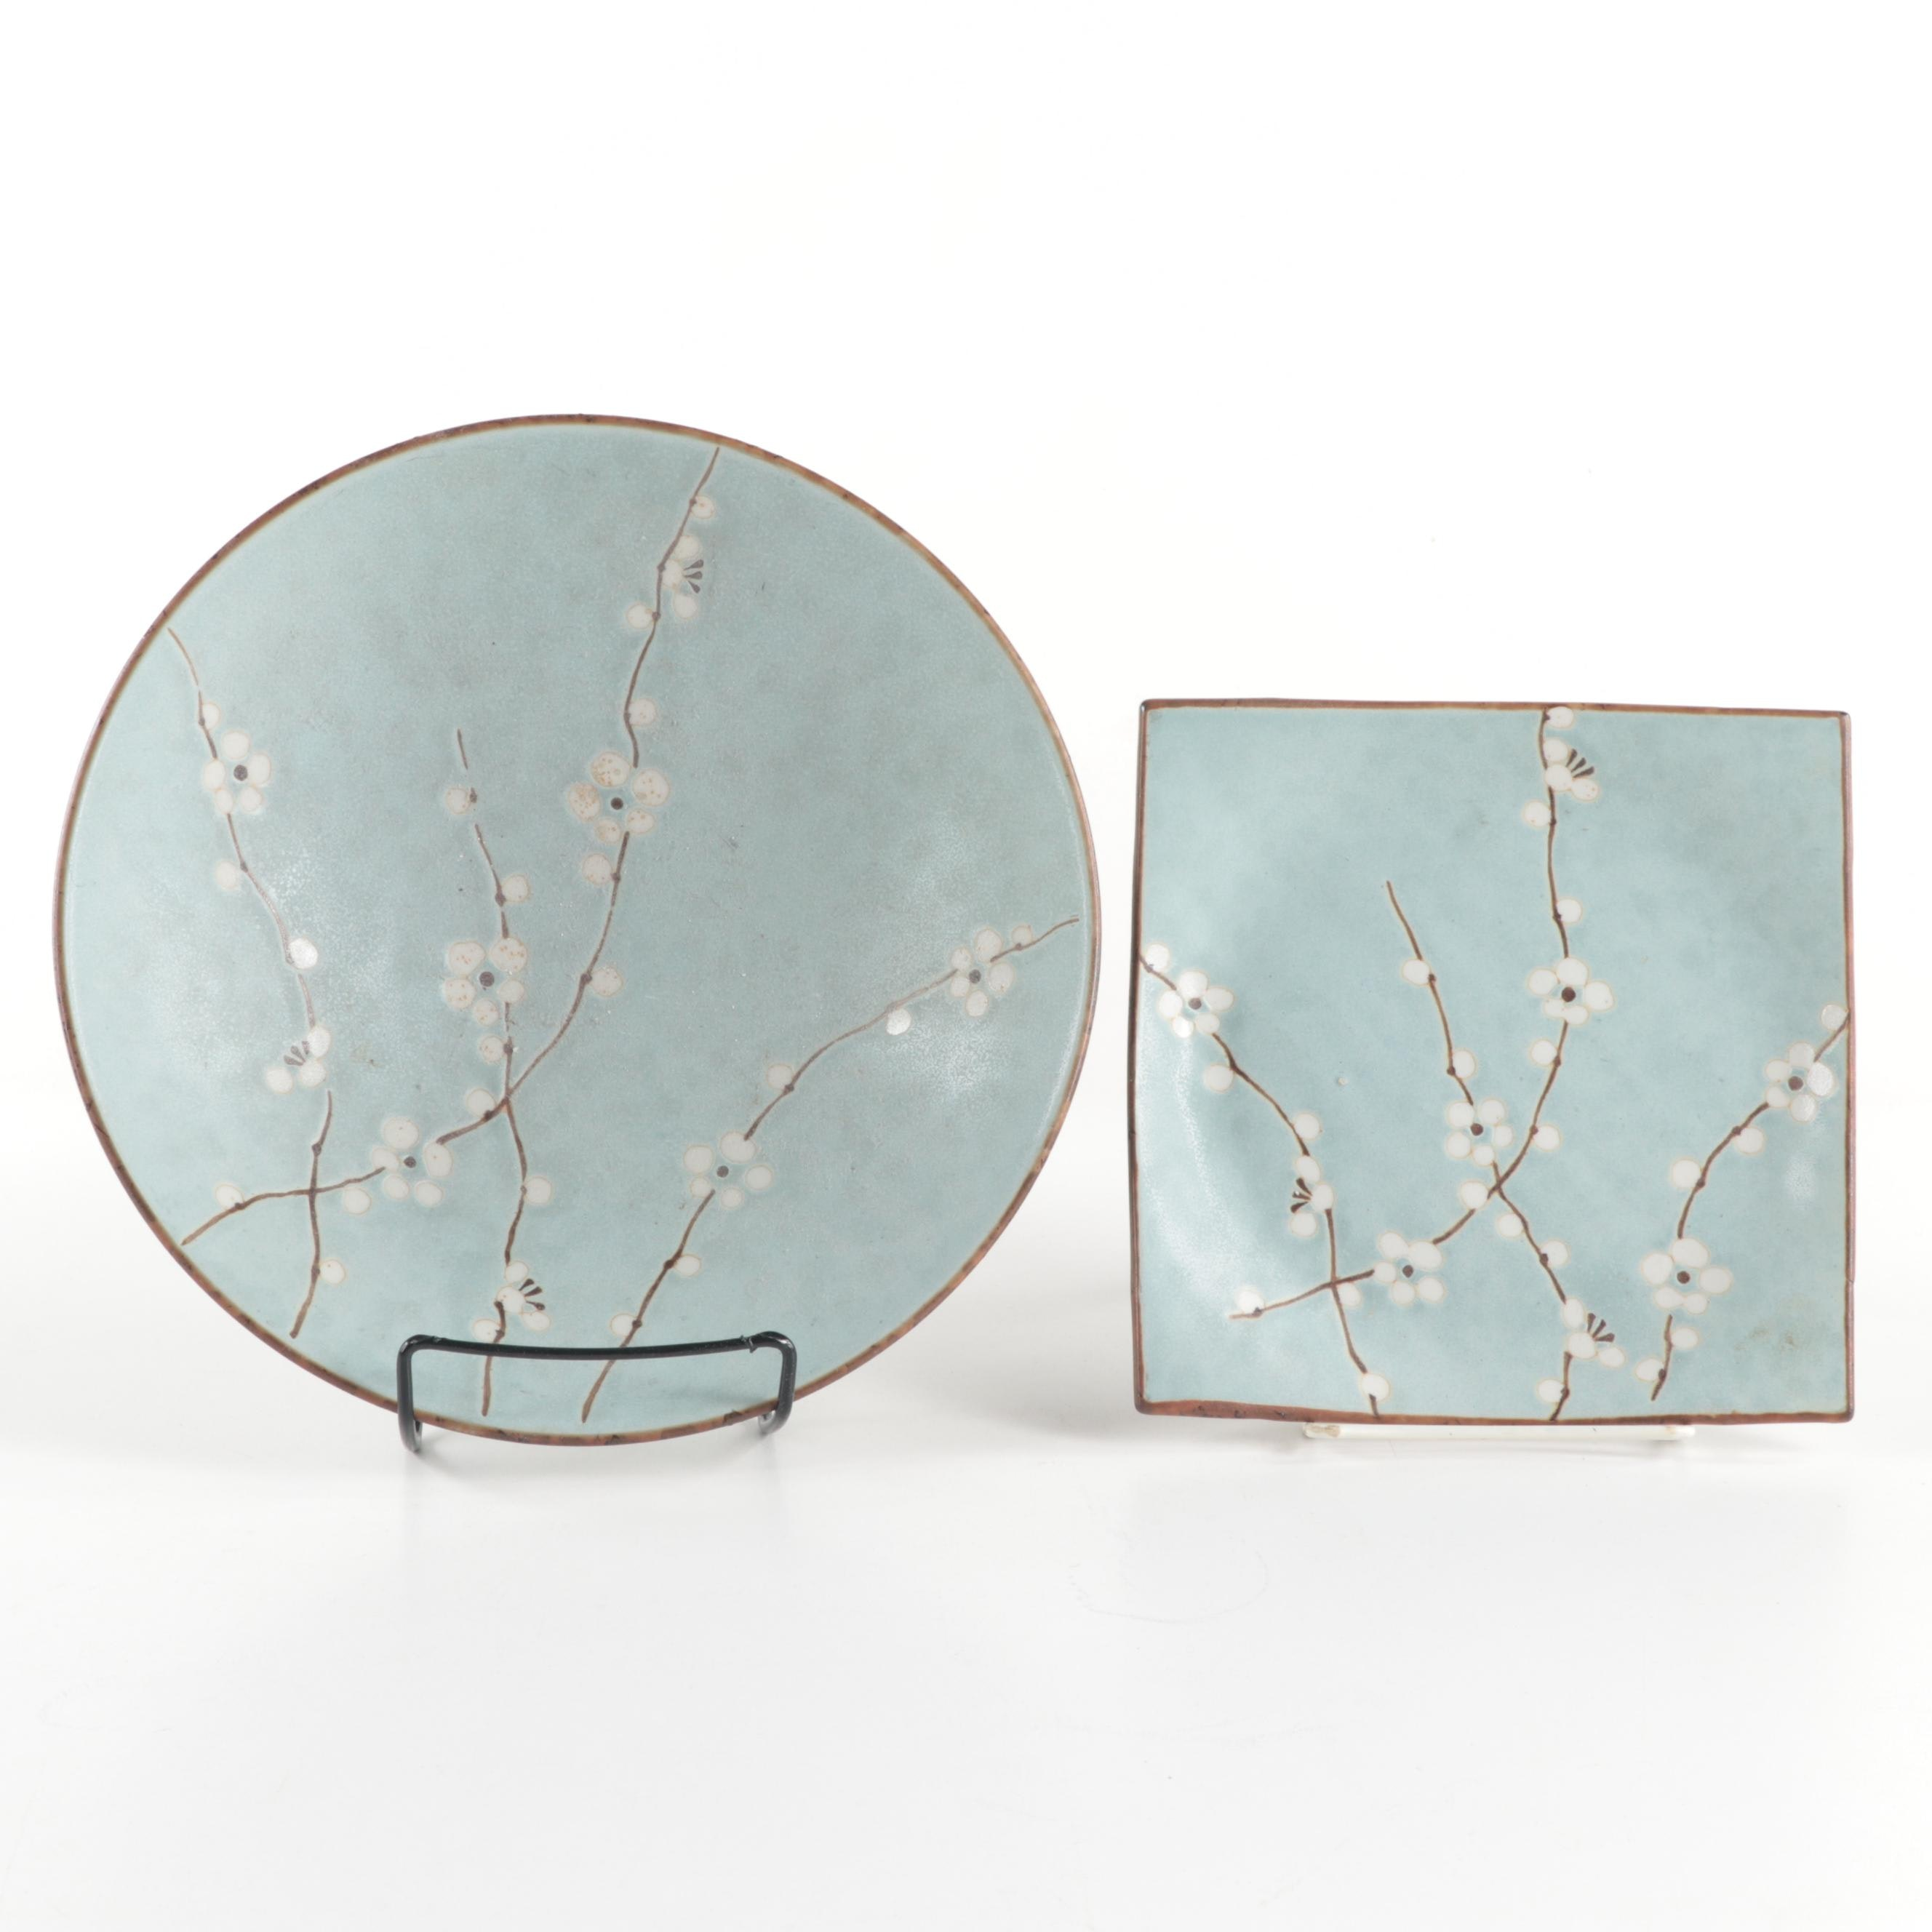 Japanese Cherry Blossom Porcelain Bowl and Plate